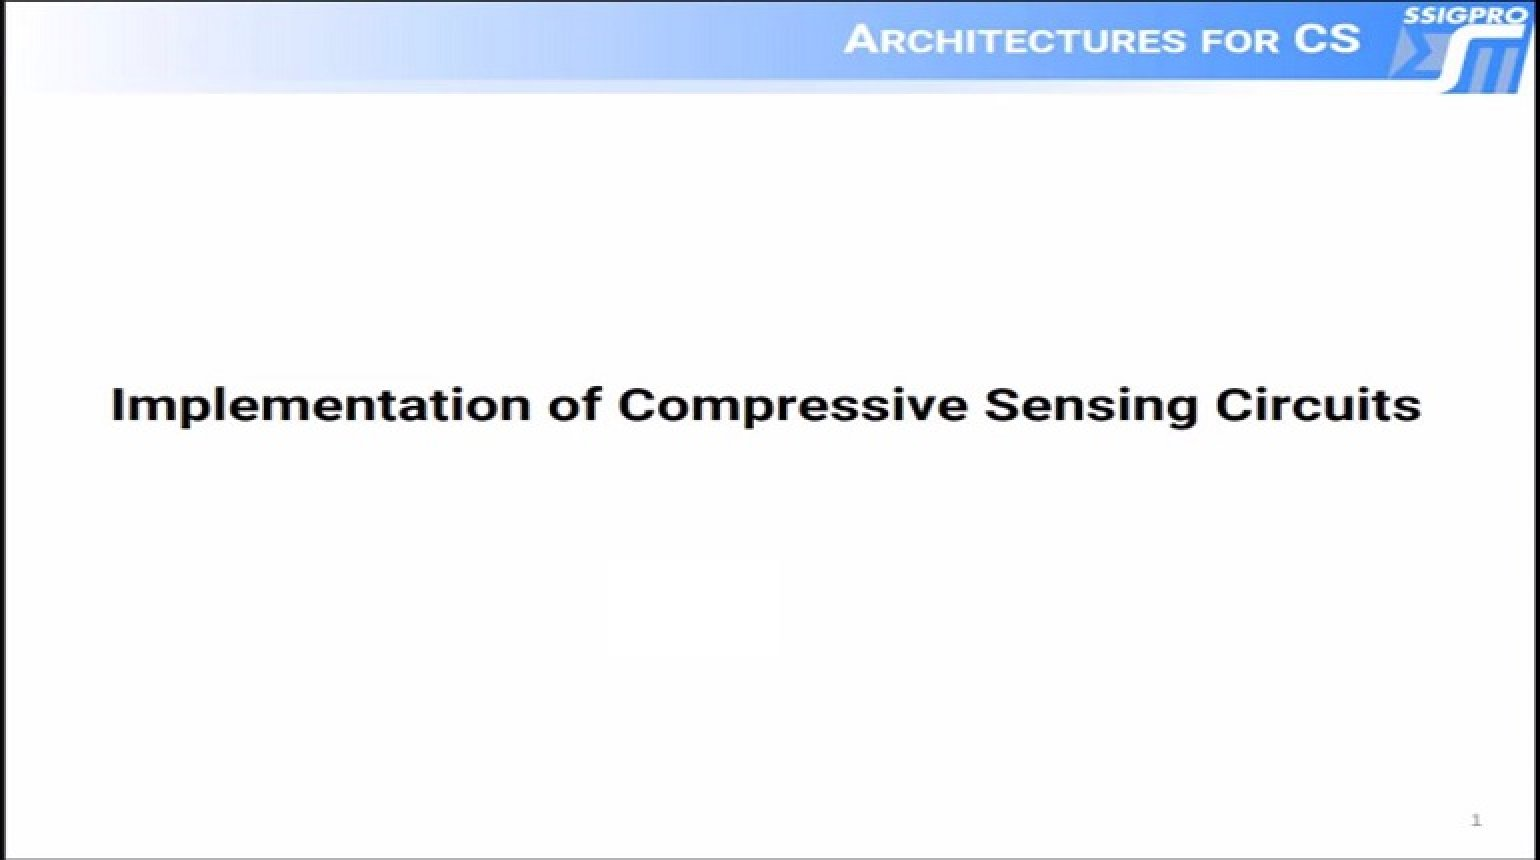 Implementation of Compressive Sensing Circuits